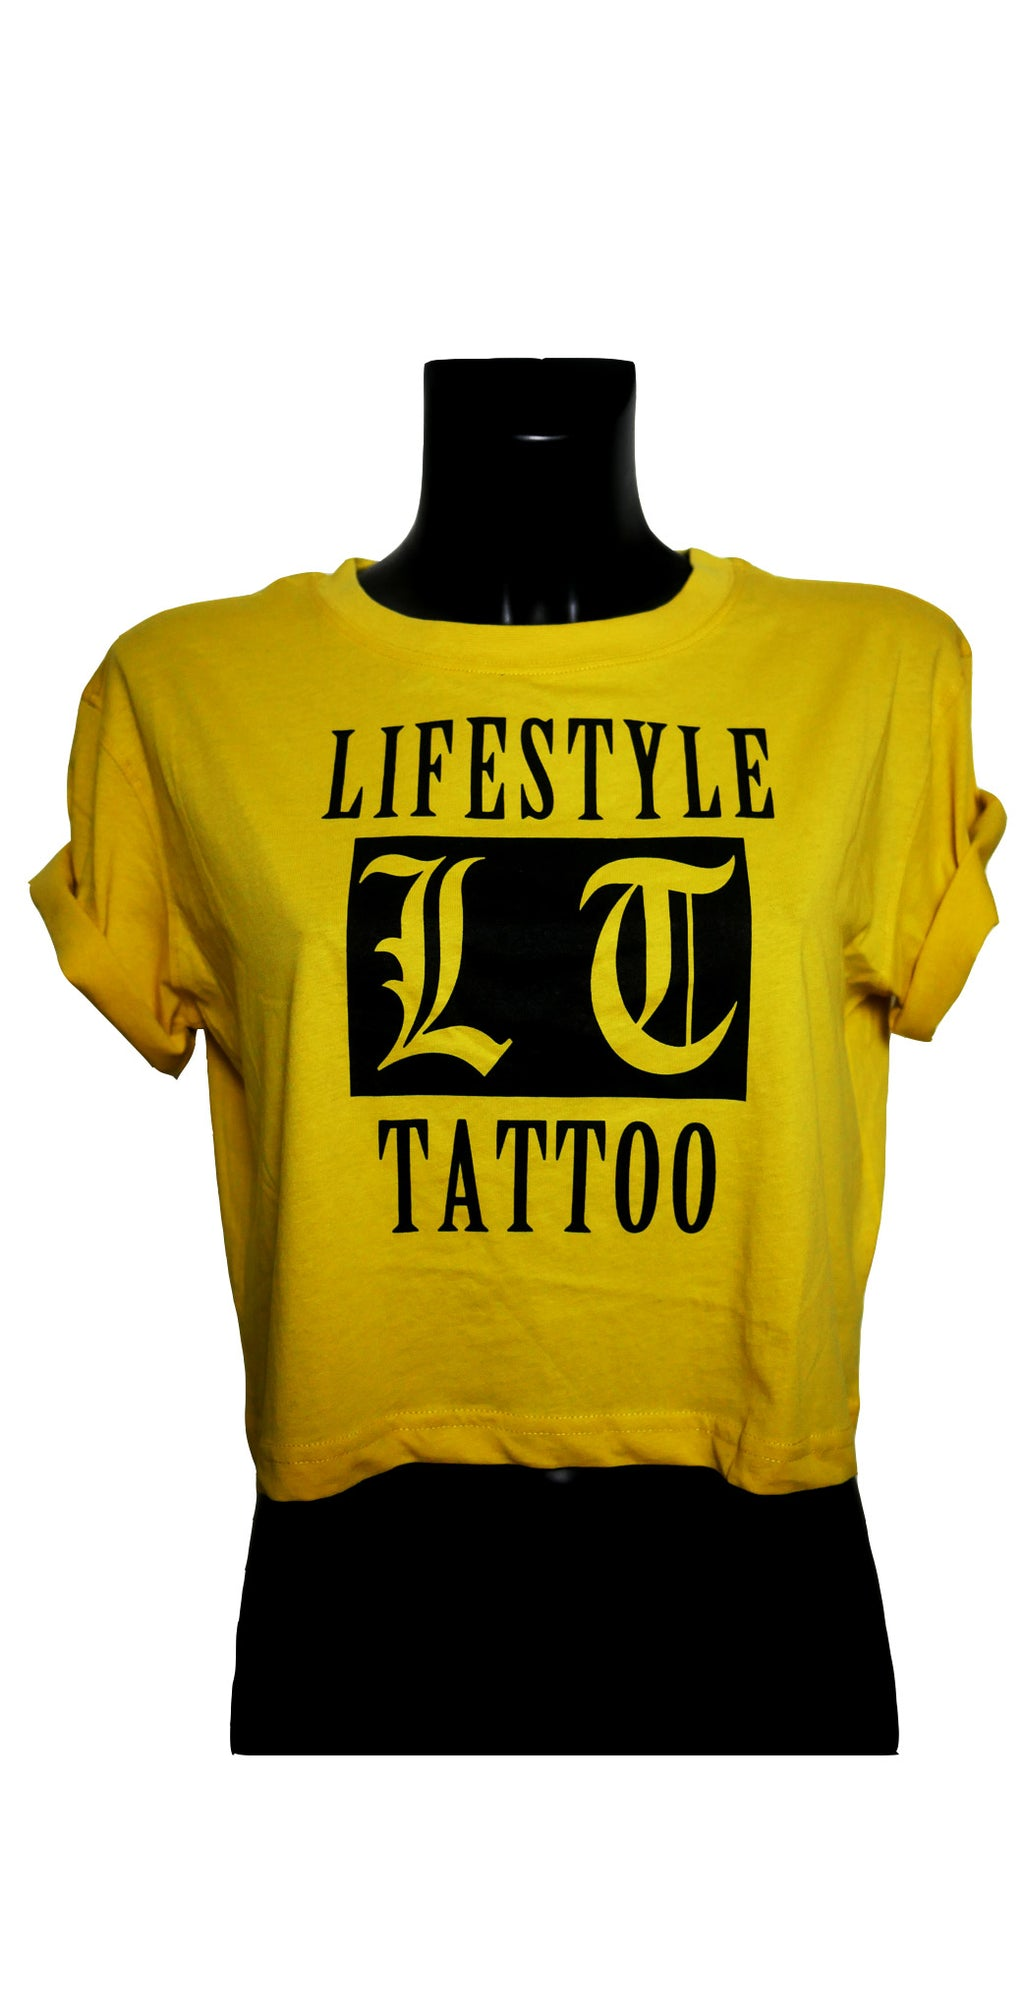 Lifestyle Tattoo LT Box Logo Dam Gul/Svart